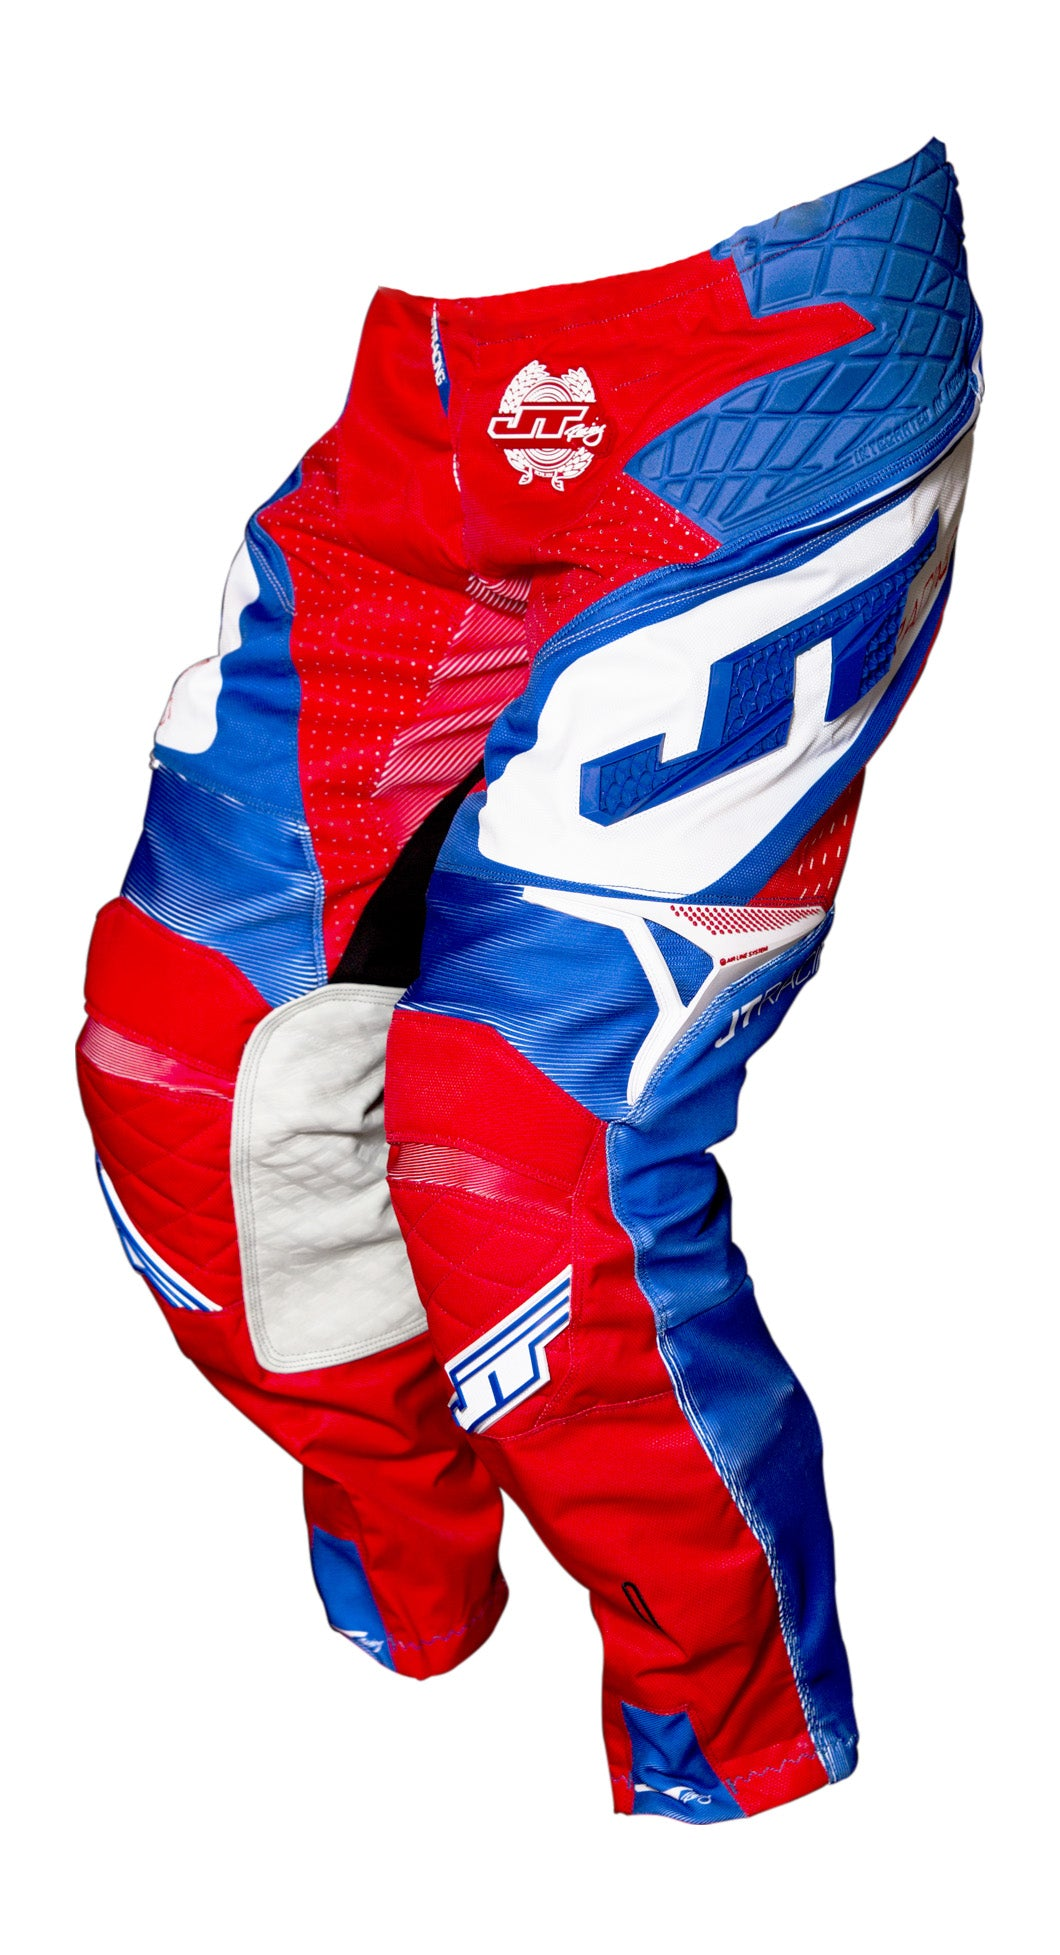 JT RACING USA-2017 ProTek Trophy Pants, Red/Blue/White